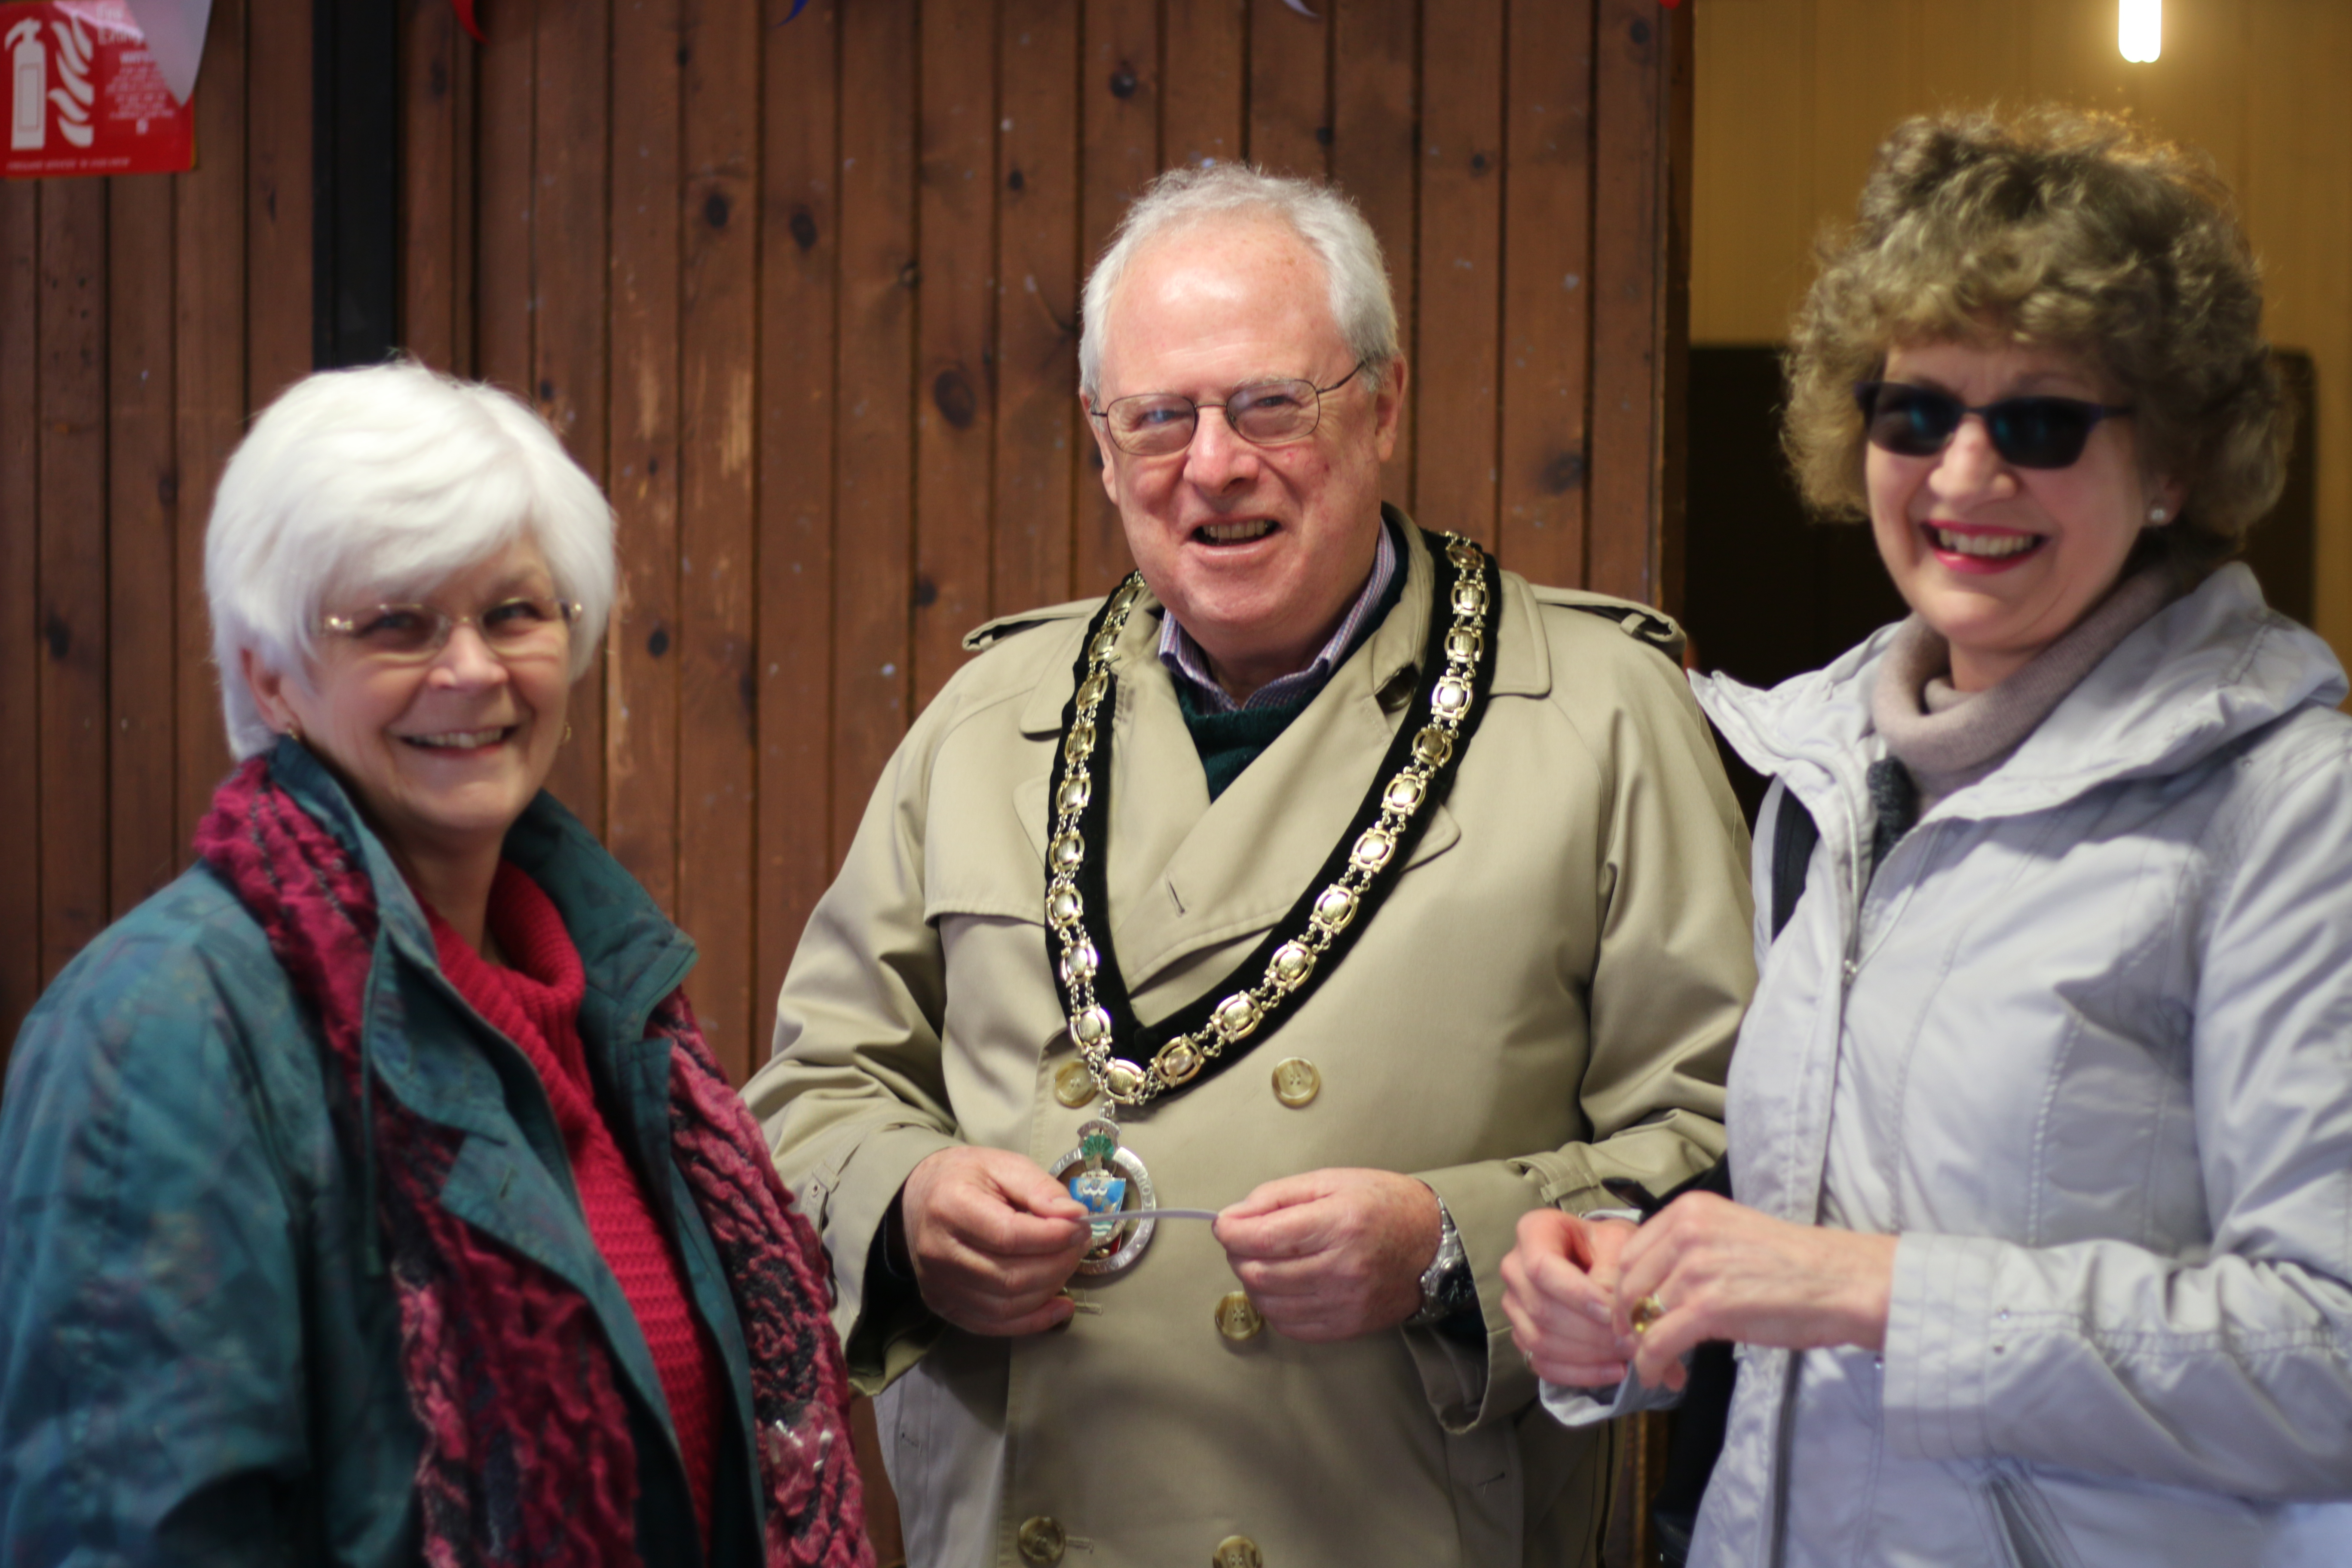 Lymington and Pennington Town Mayor visits our hall open day